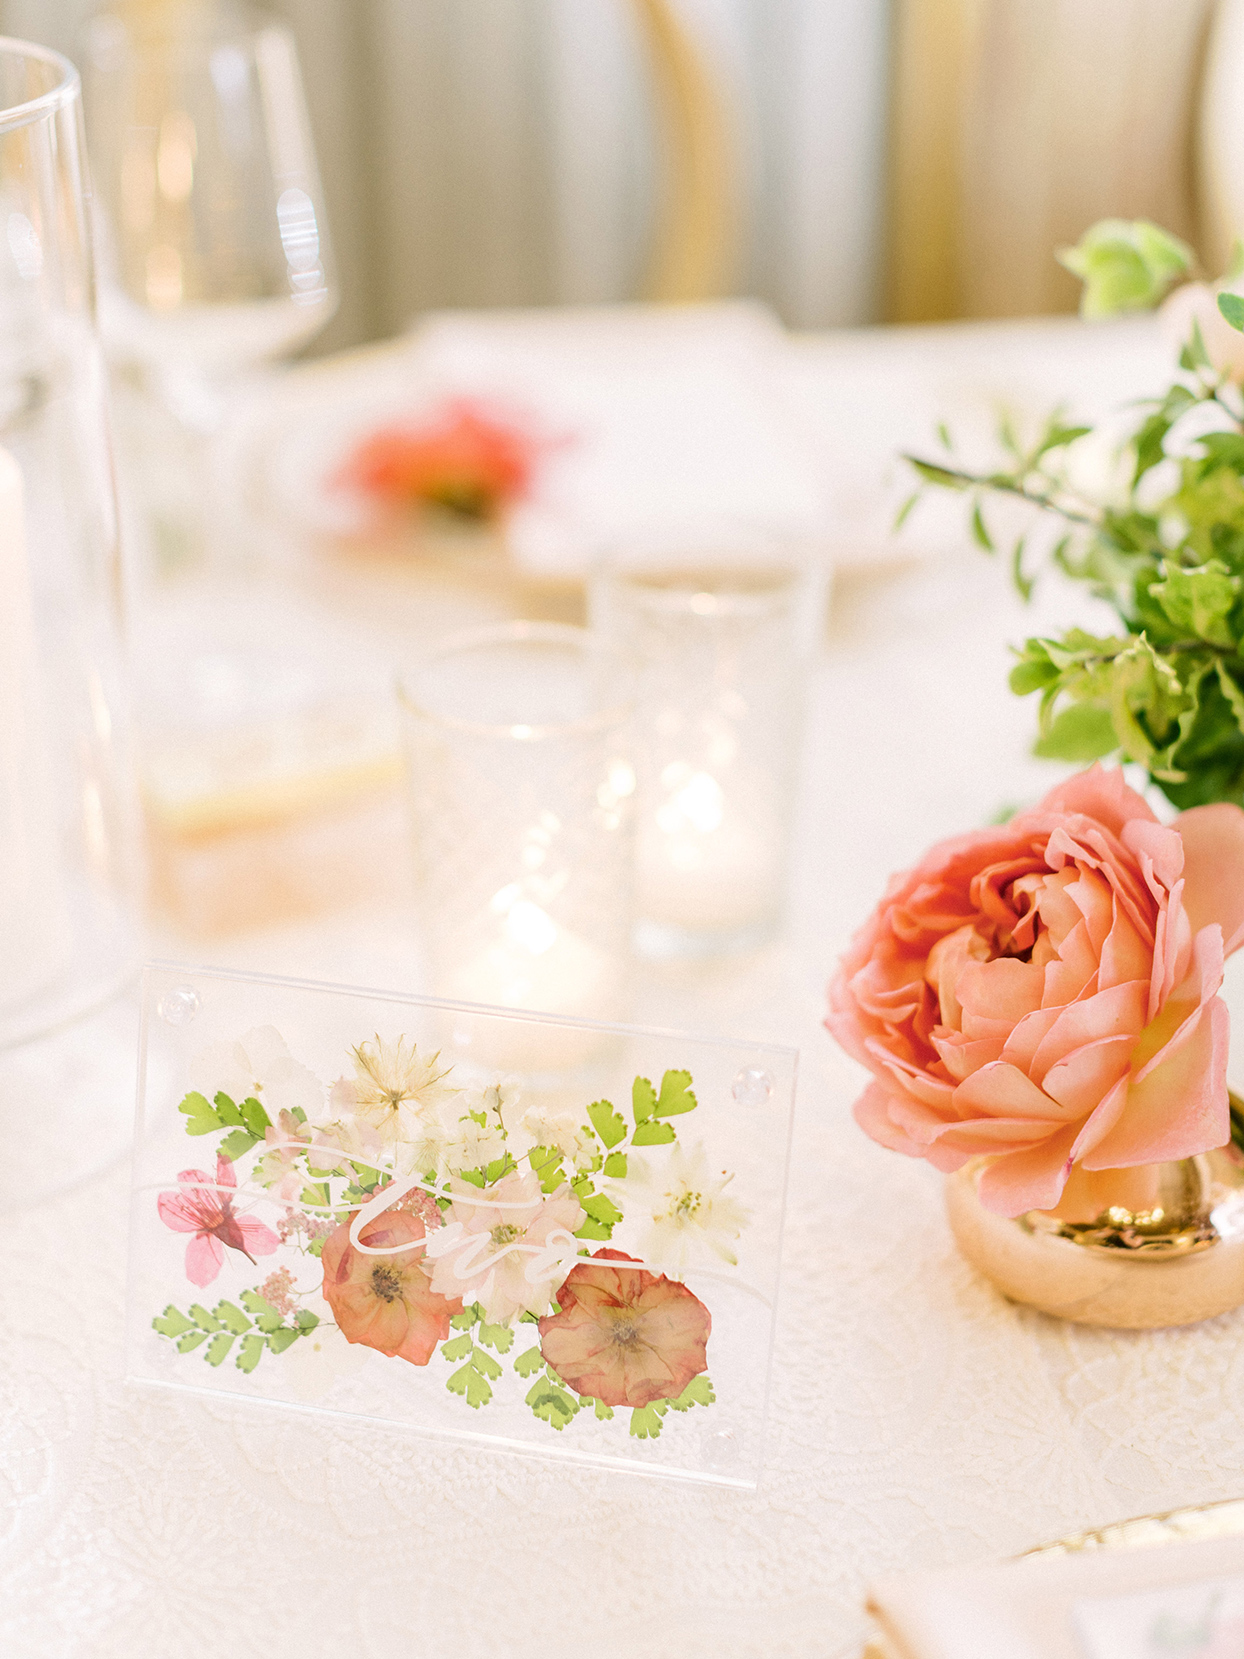 wedding table numbers with pressed flowers